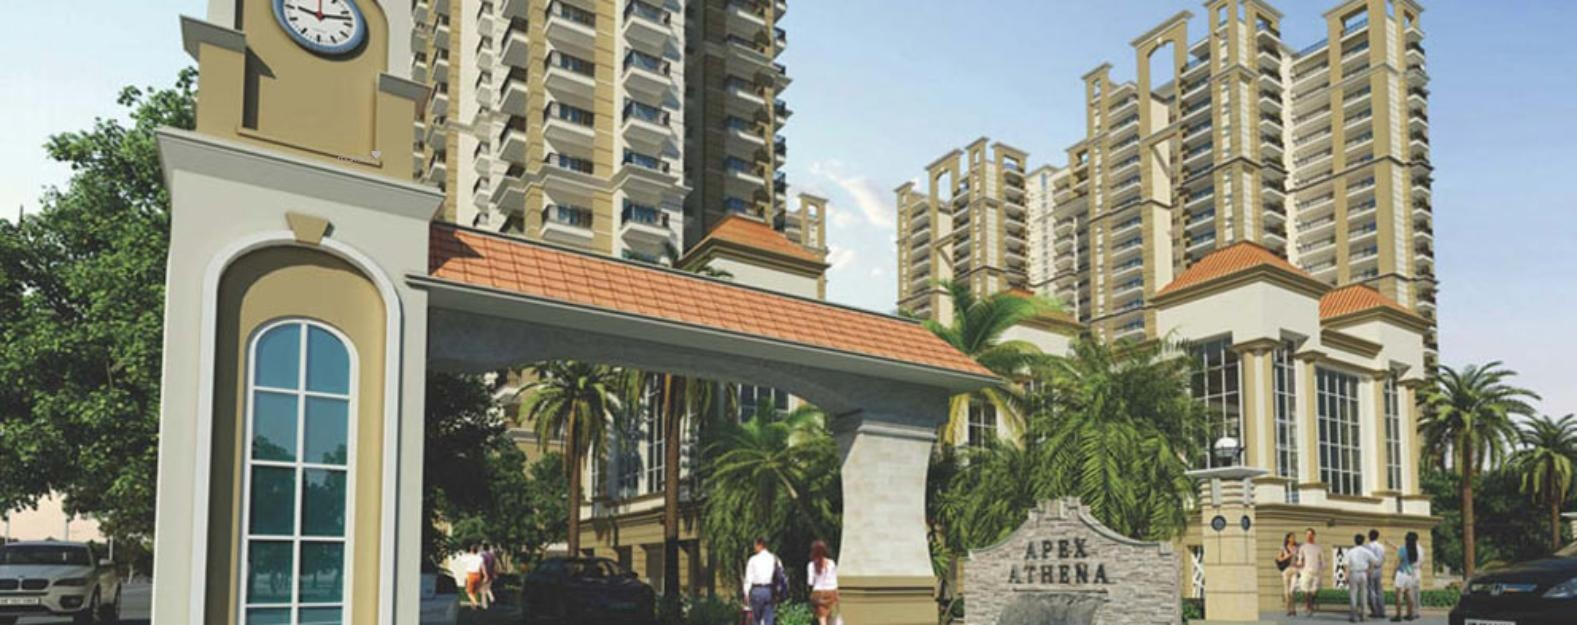 2725 sq ft 4BHK 4BHK+4T (2,725 sq ft) + Study Room Property By Ajmani Estates In Athena, Sector 75